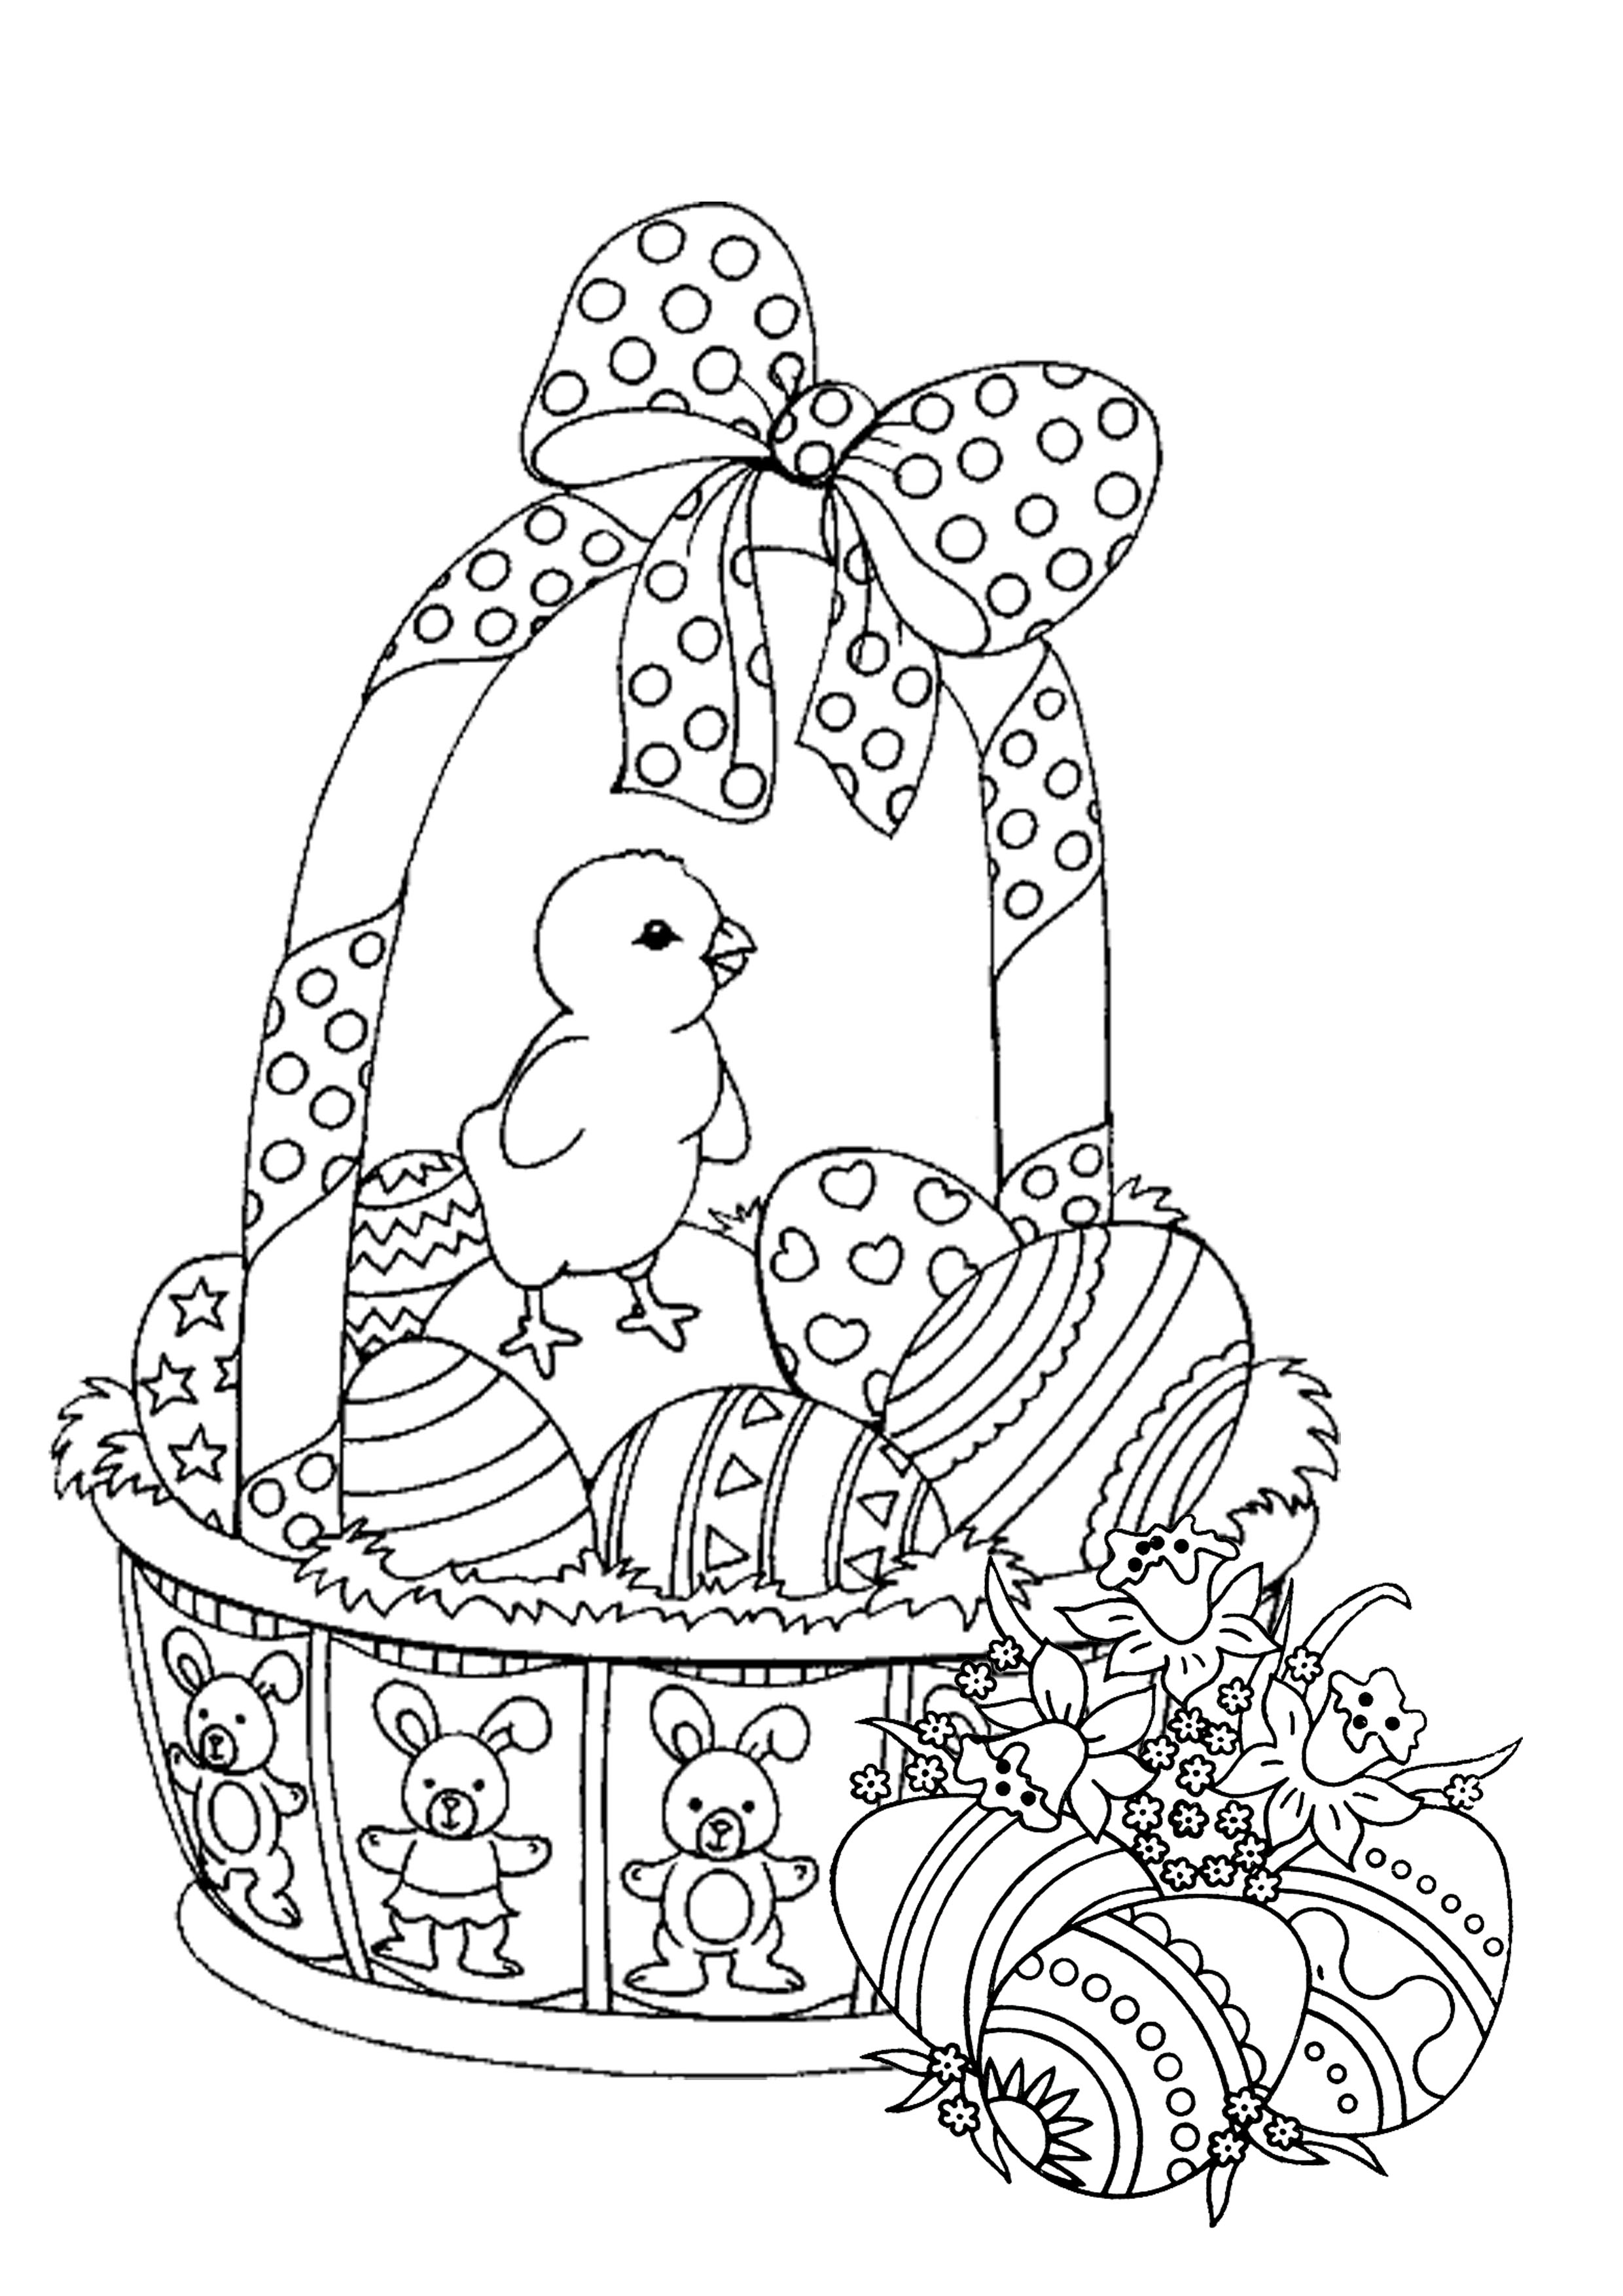 Easter Coloring Pages for Adults - Best Coloring Pages For ...